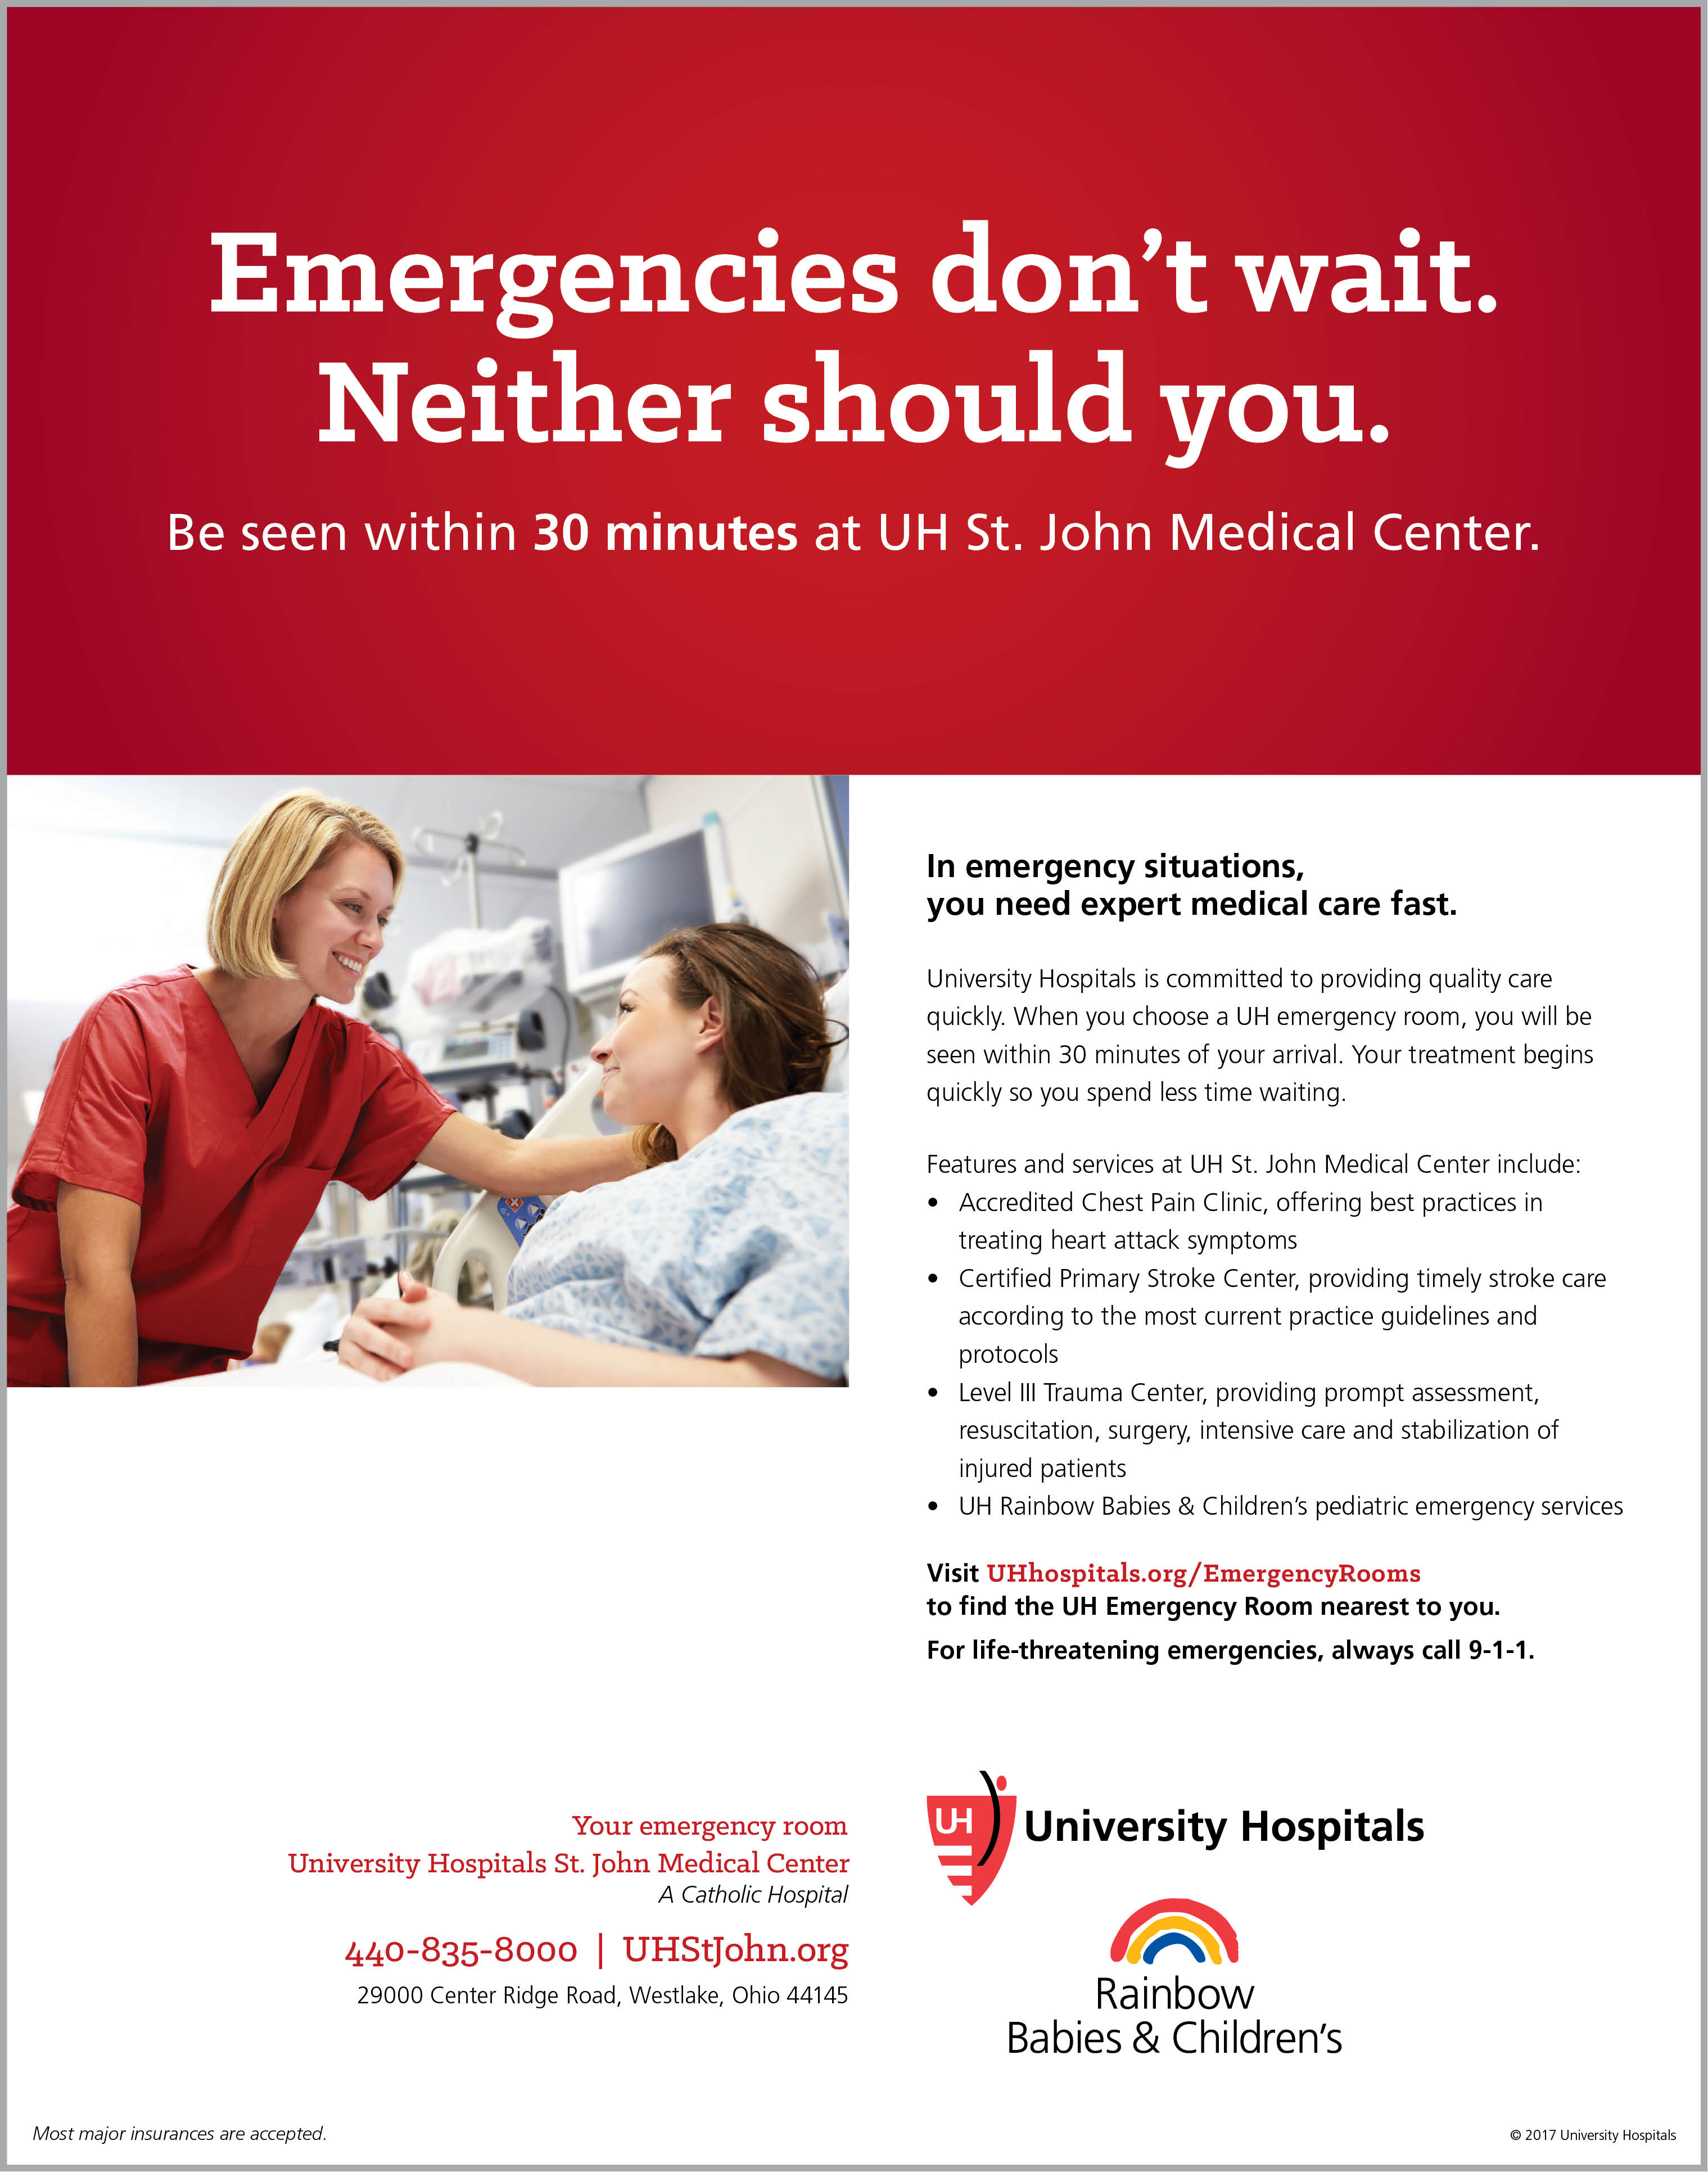 Five Stars for Quality: UH St  John Medical Center Achieves